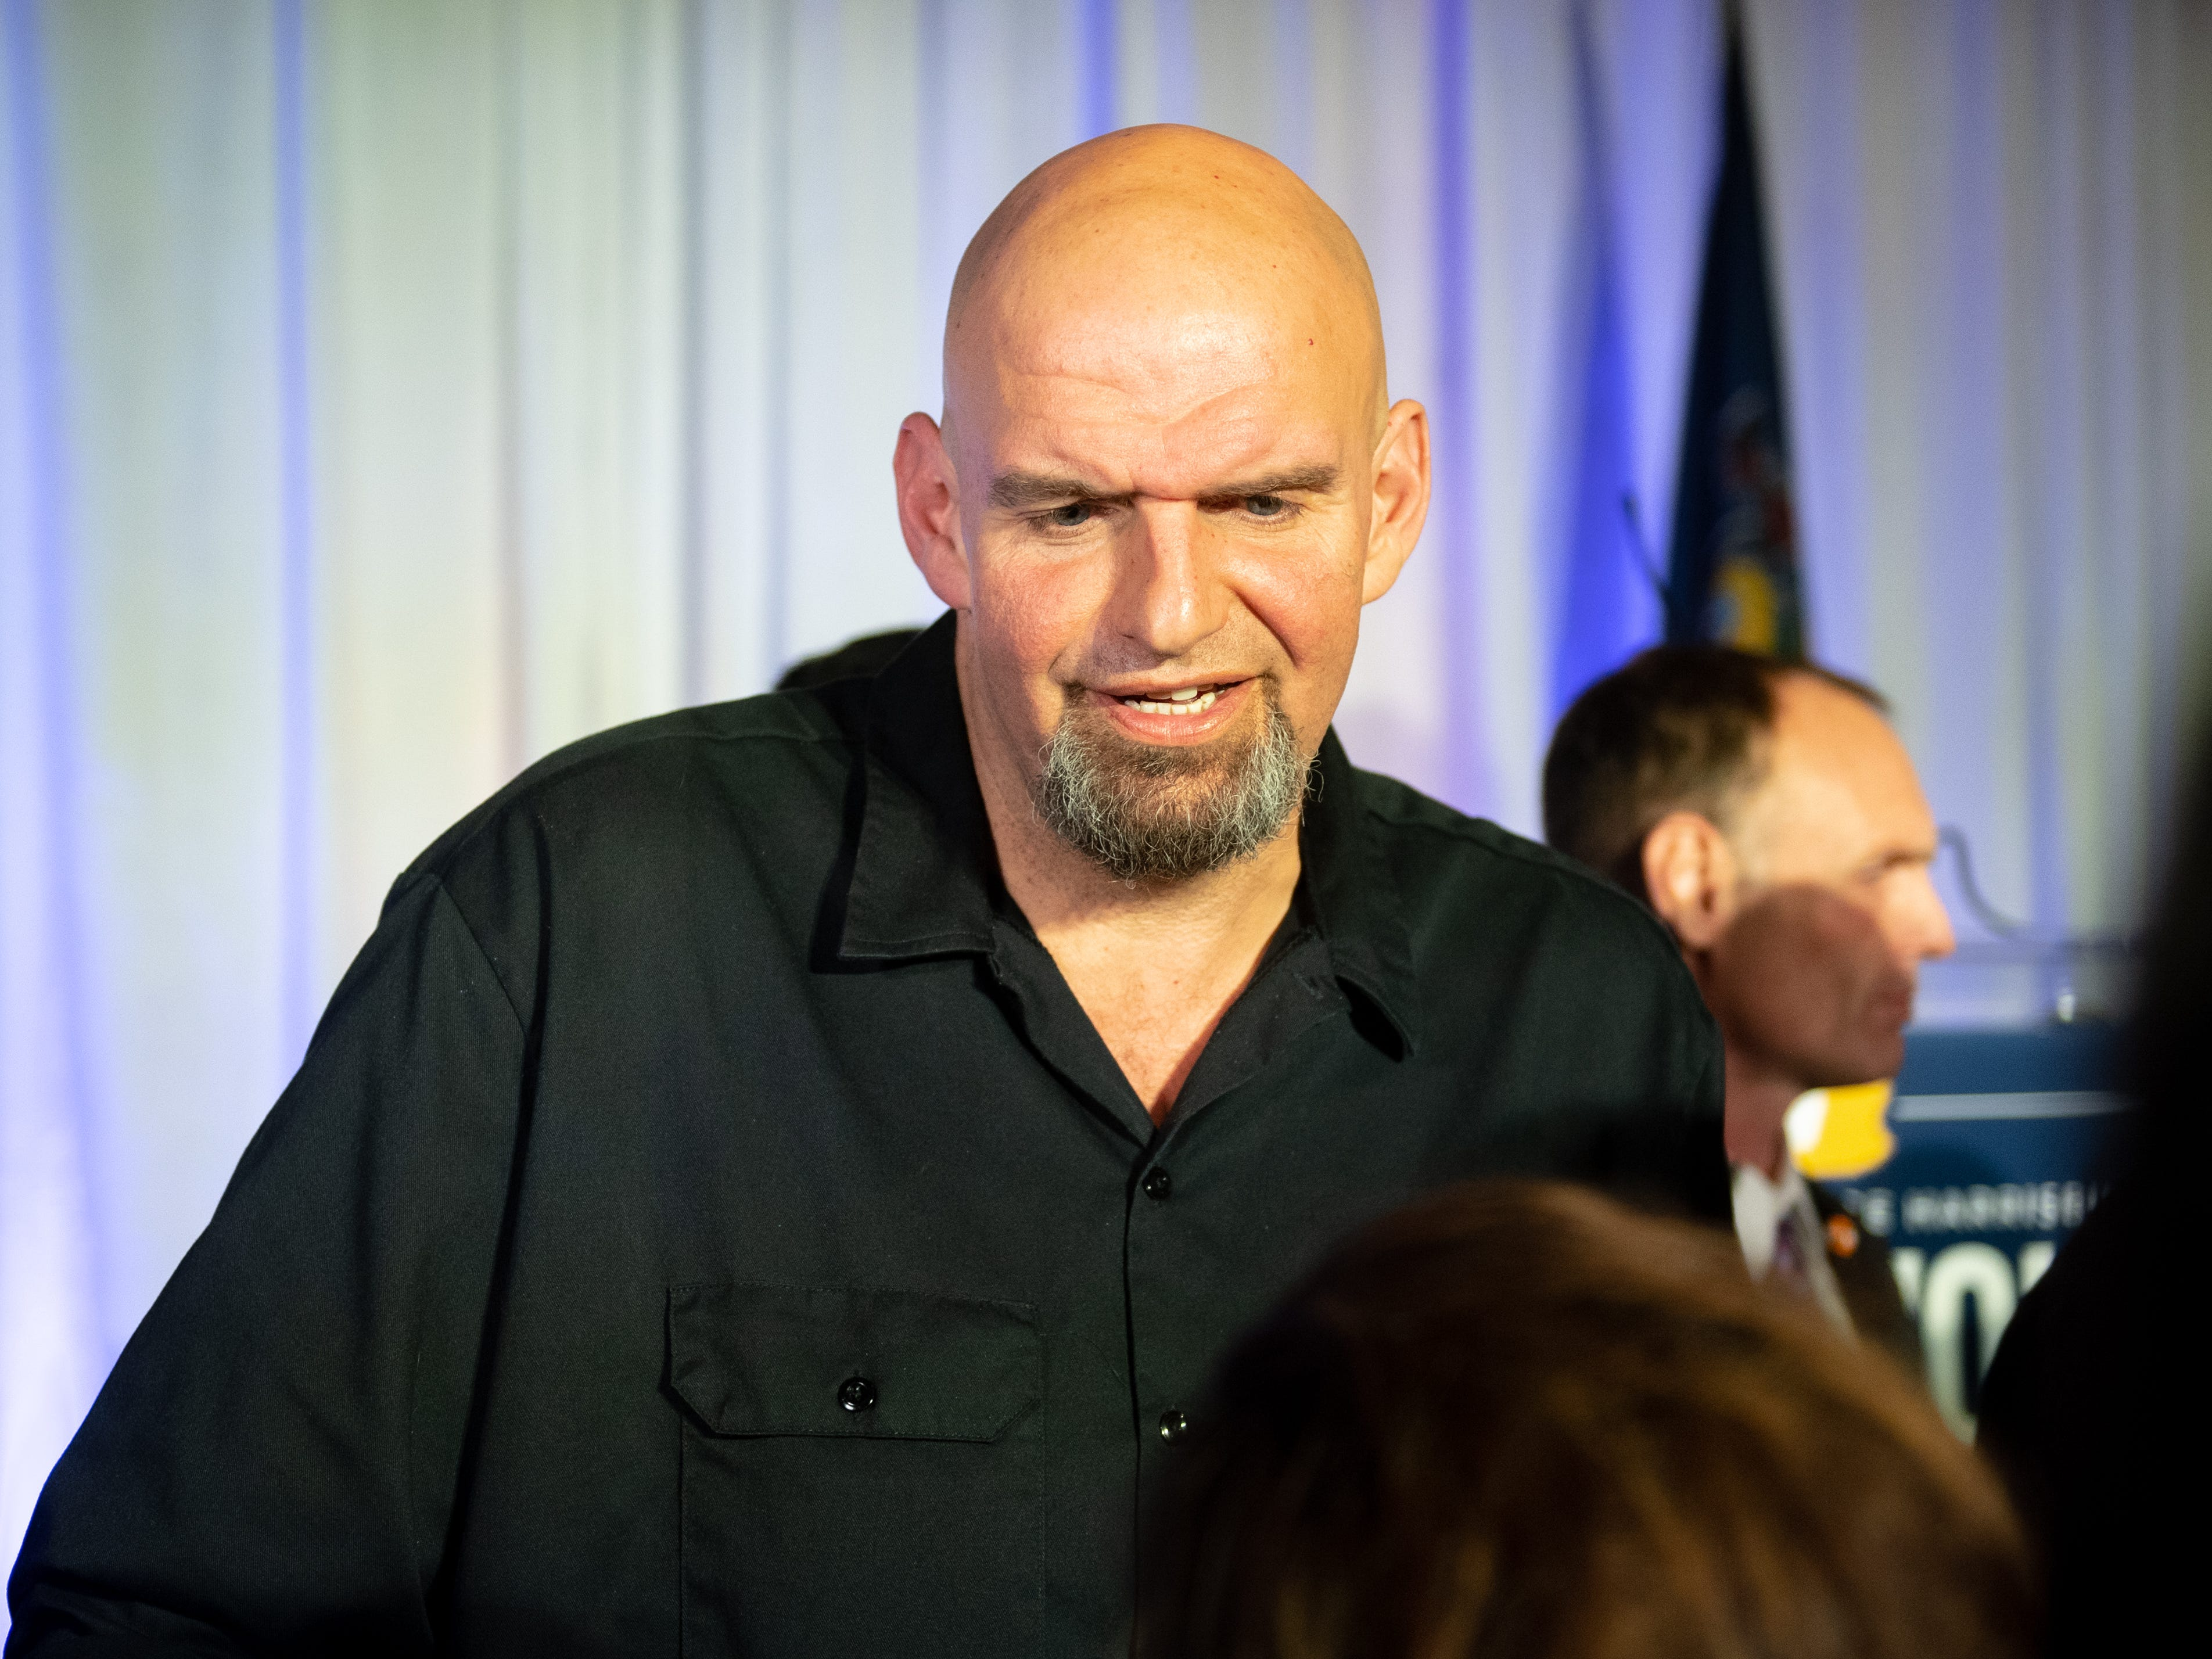 Lieutenant Governor-Elect John Fetterman talks with supporters during the Election Night Party at The Bond, Tuesday, November 6, 2018. Tom Wolf was re-elected as Governor of Pennsylvania after defeating Scott Wagner.